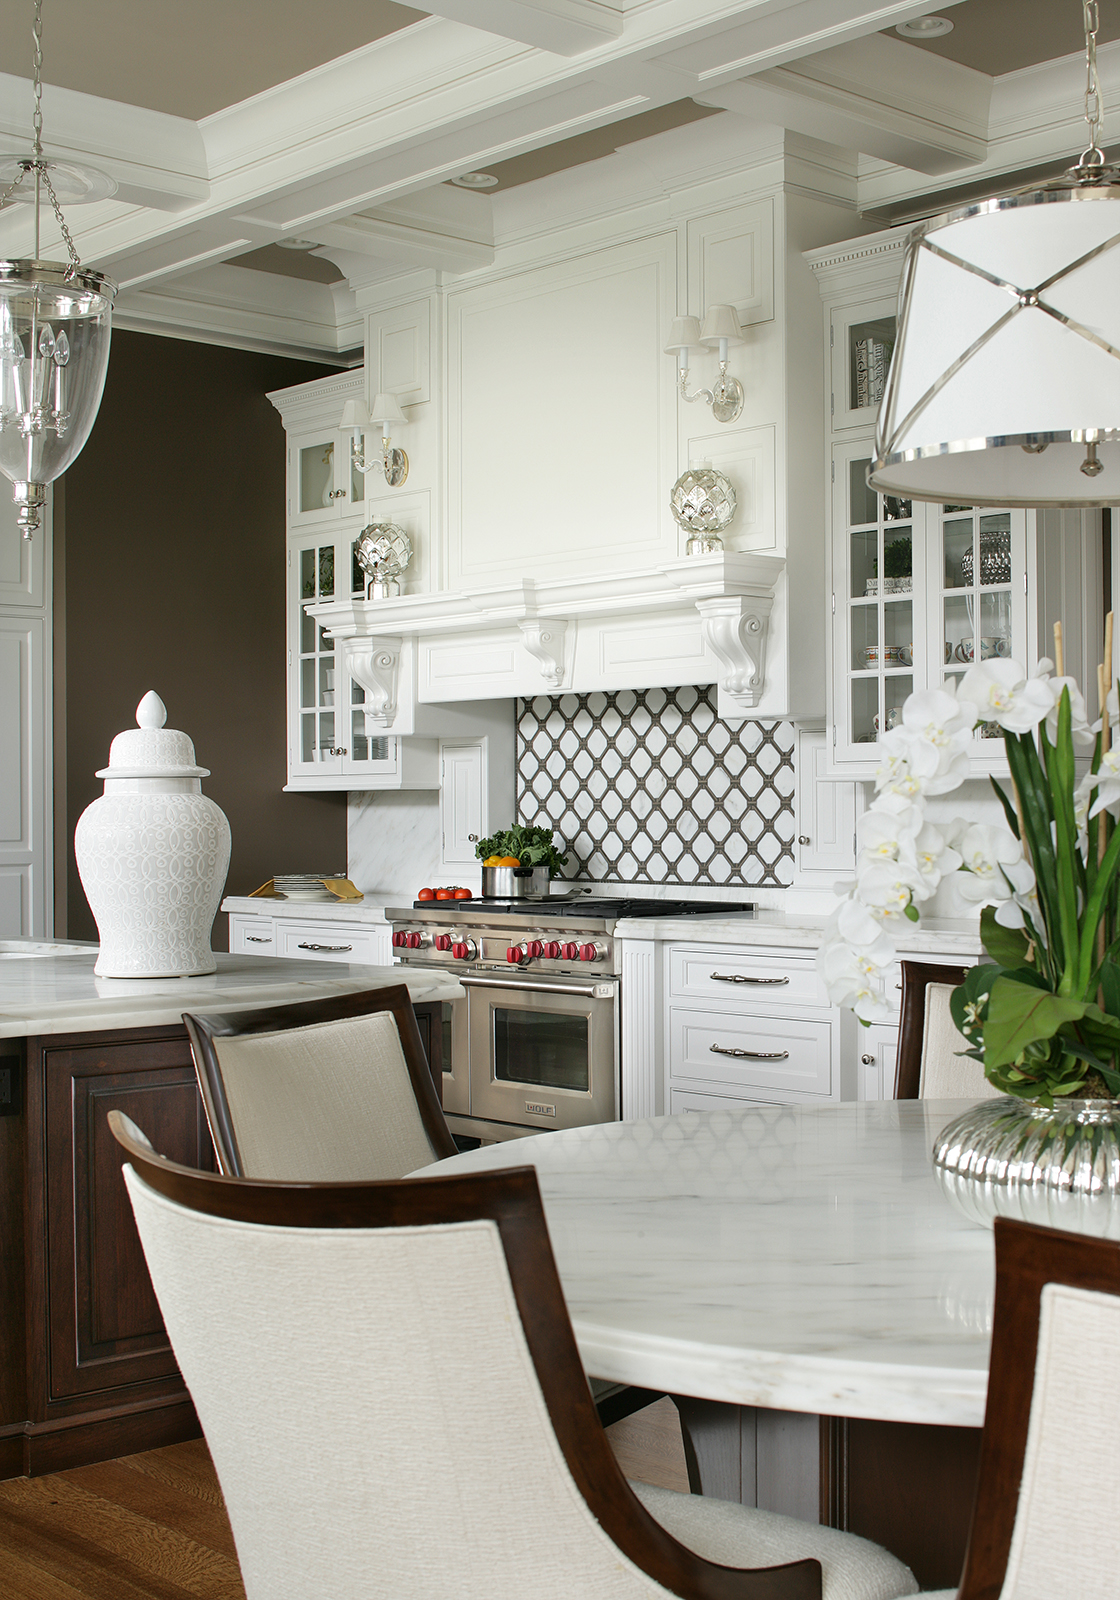 Kitchen Custom Design.jpg